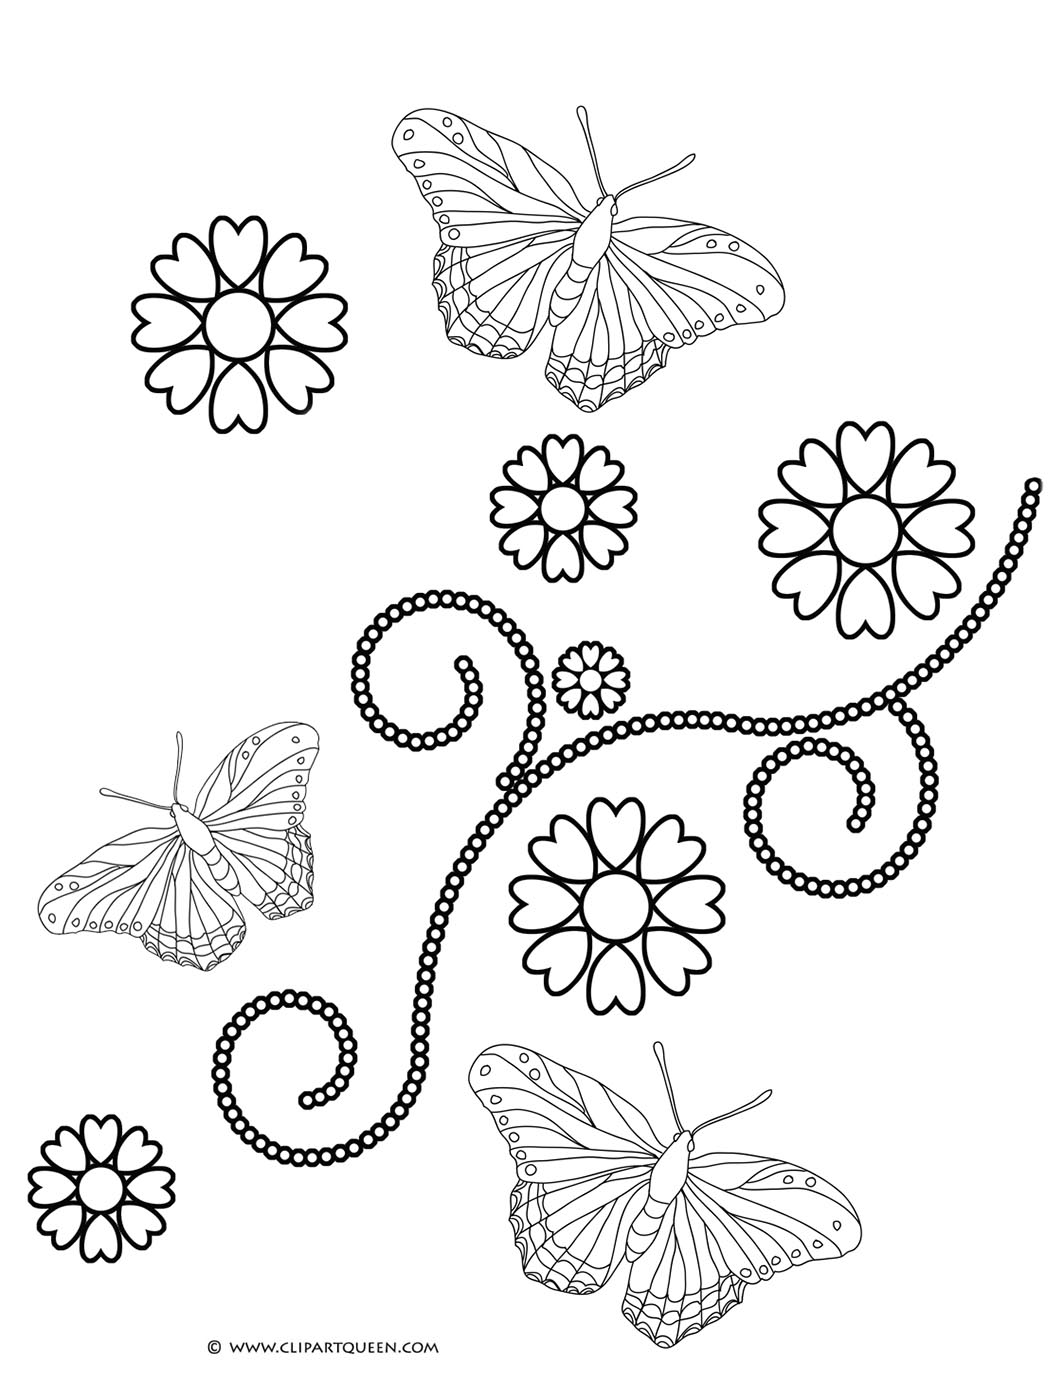 1063x1398 And Butterflies And Hearts Drawings